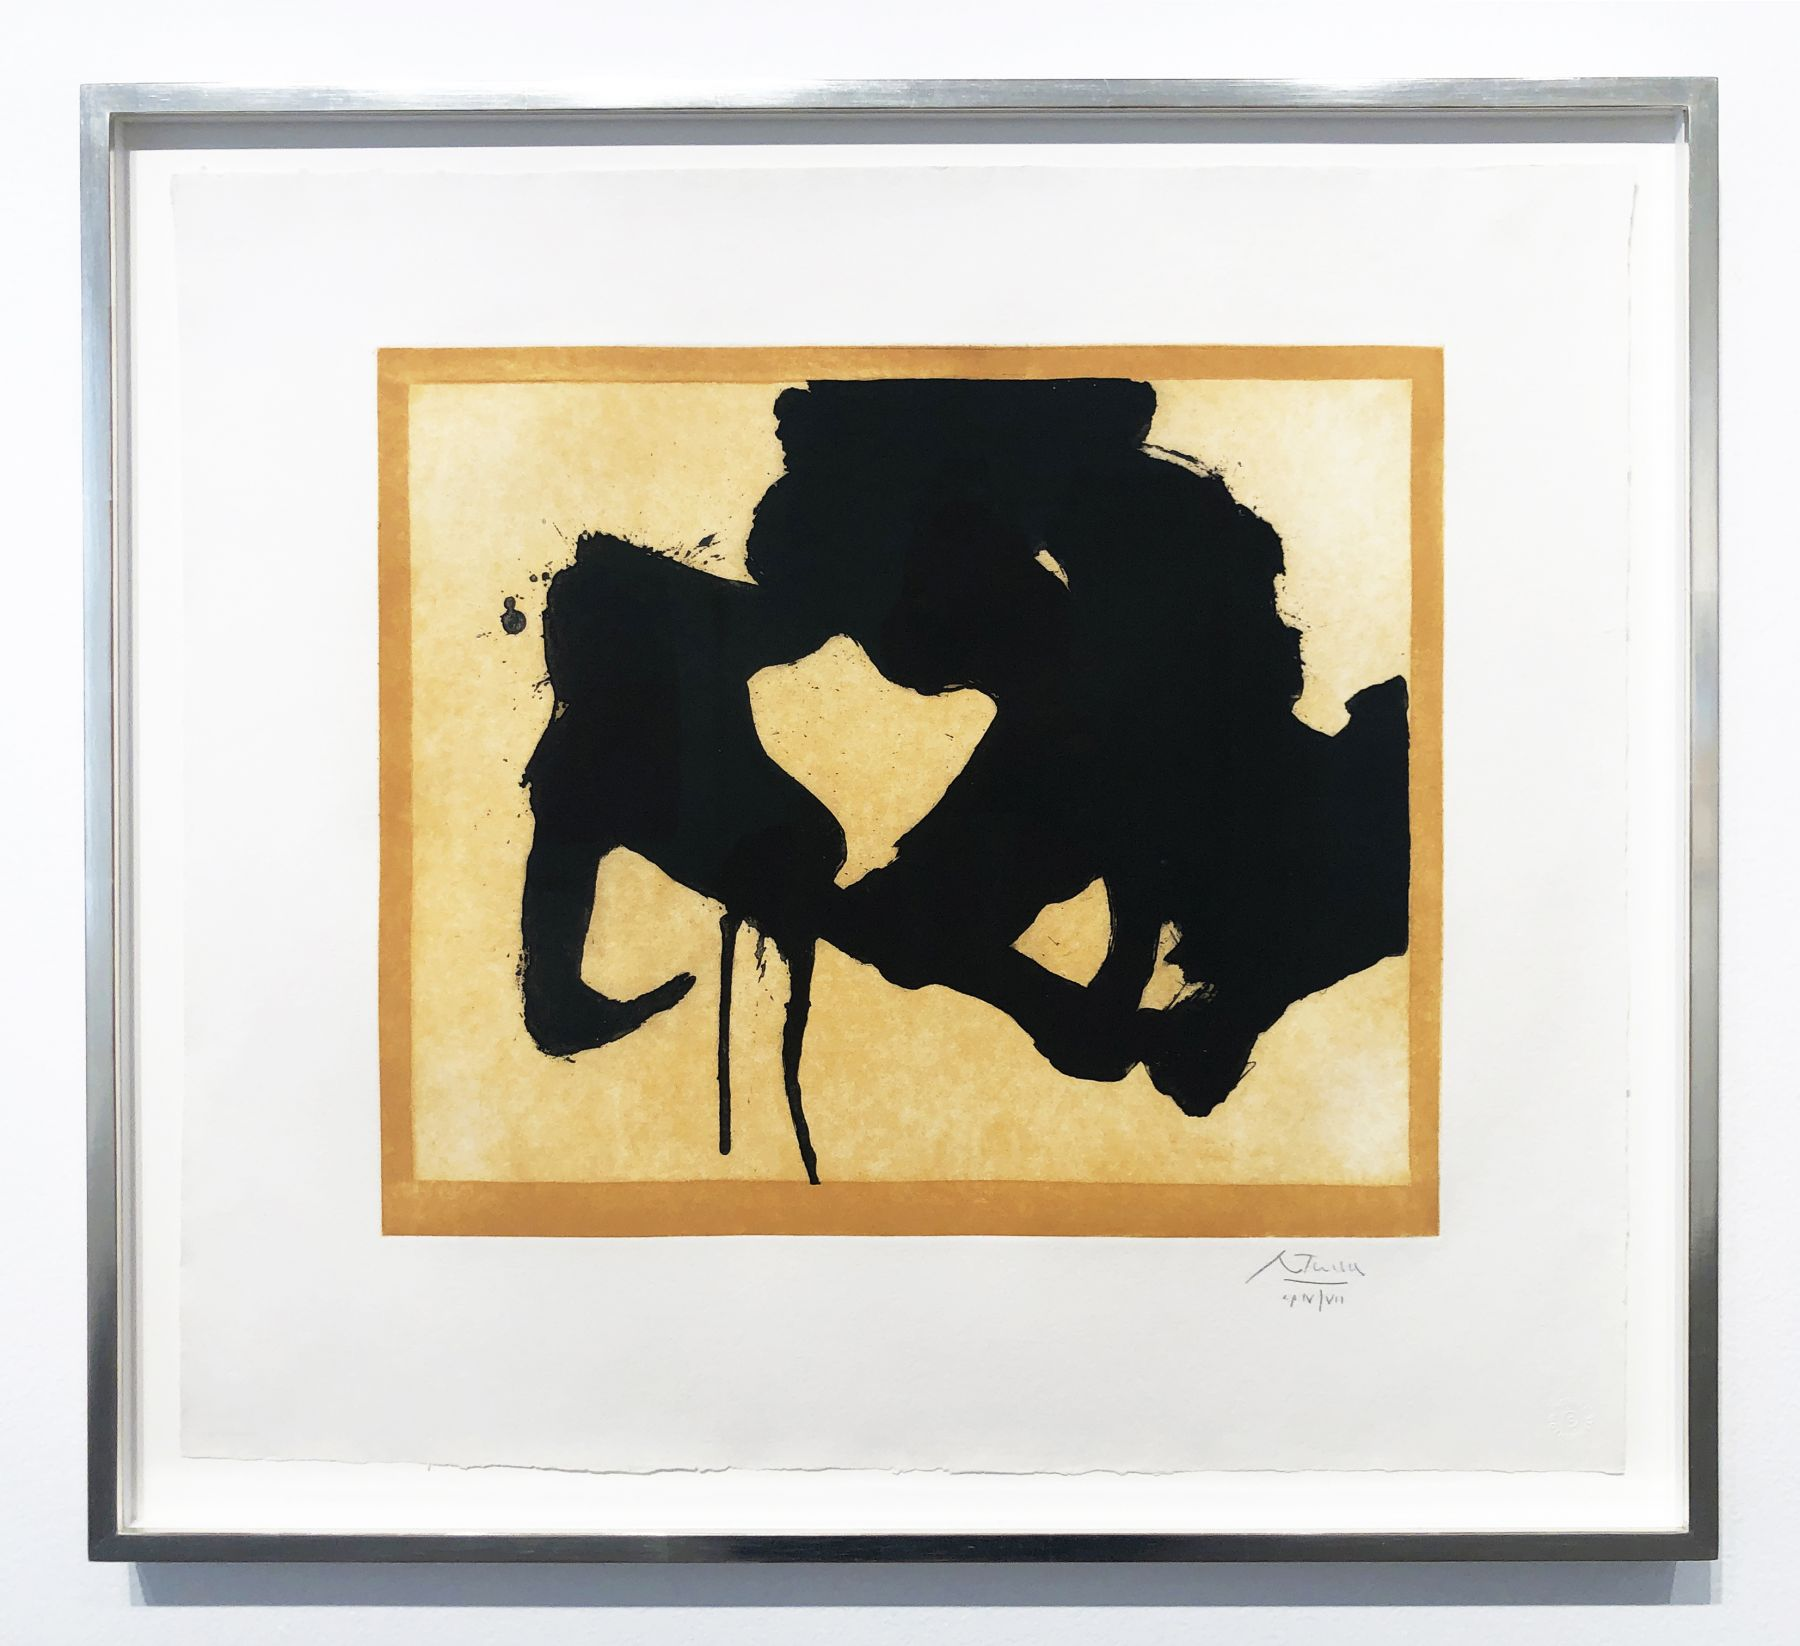 Robert Motherwell, At the Edge, 1984